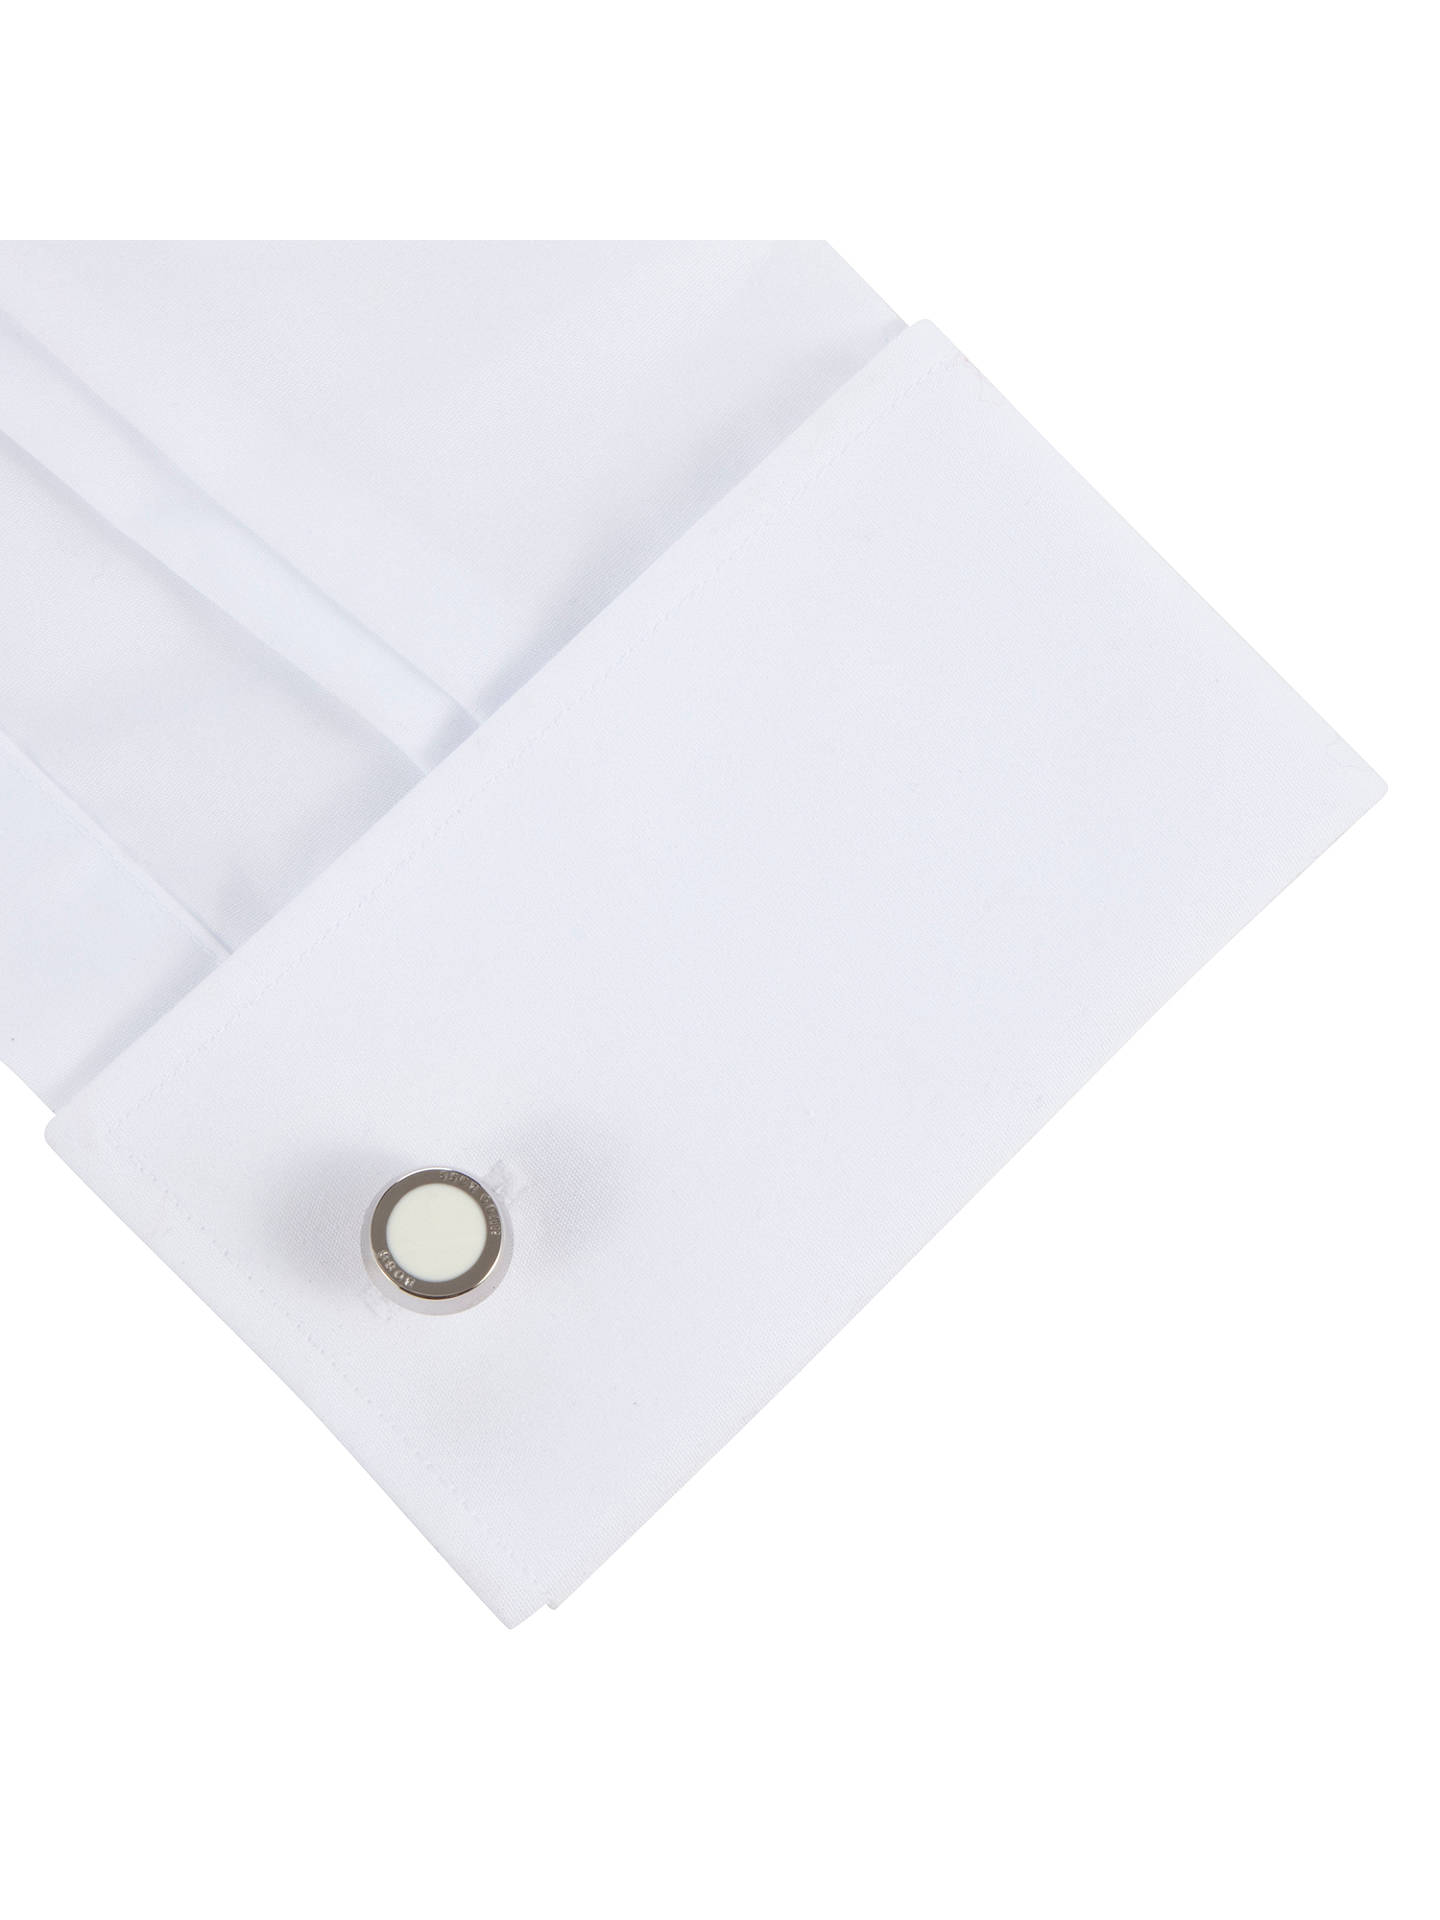 BuyBOSS Simony Rounded Cufflinks, White Online at johnlewis.com